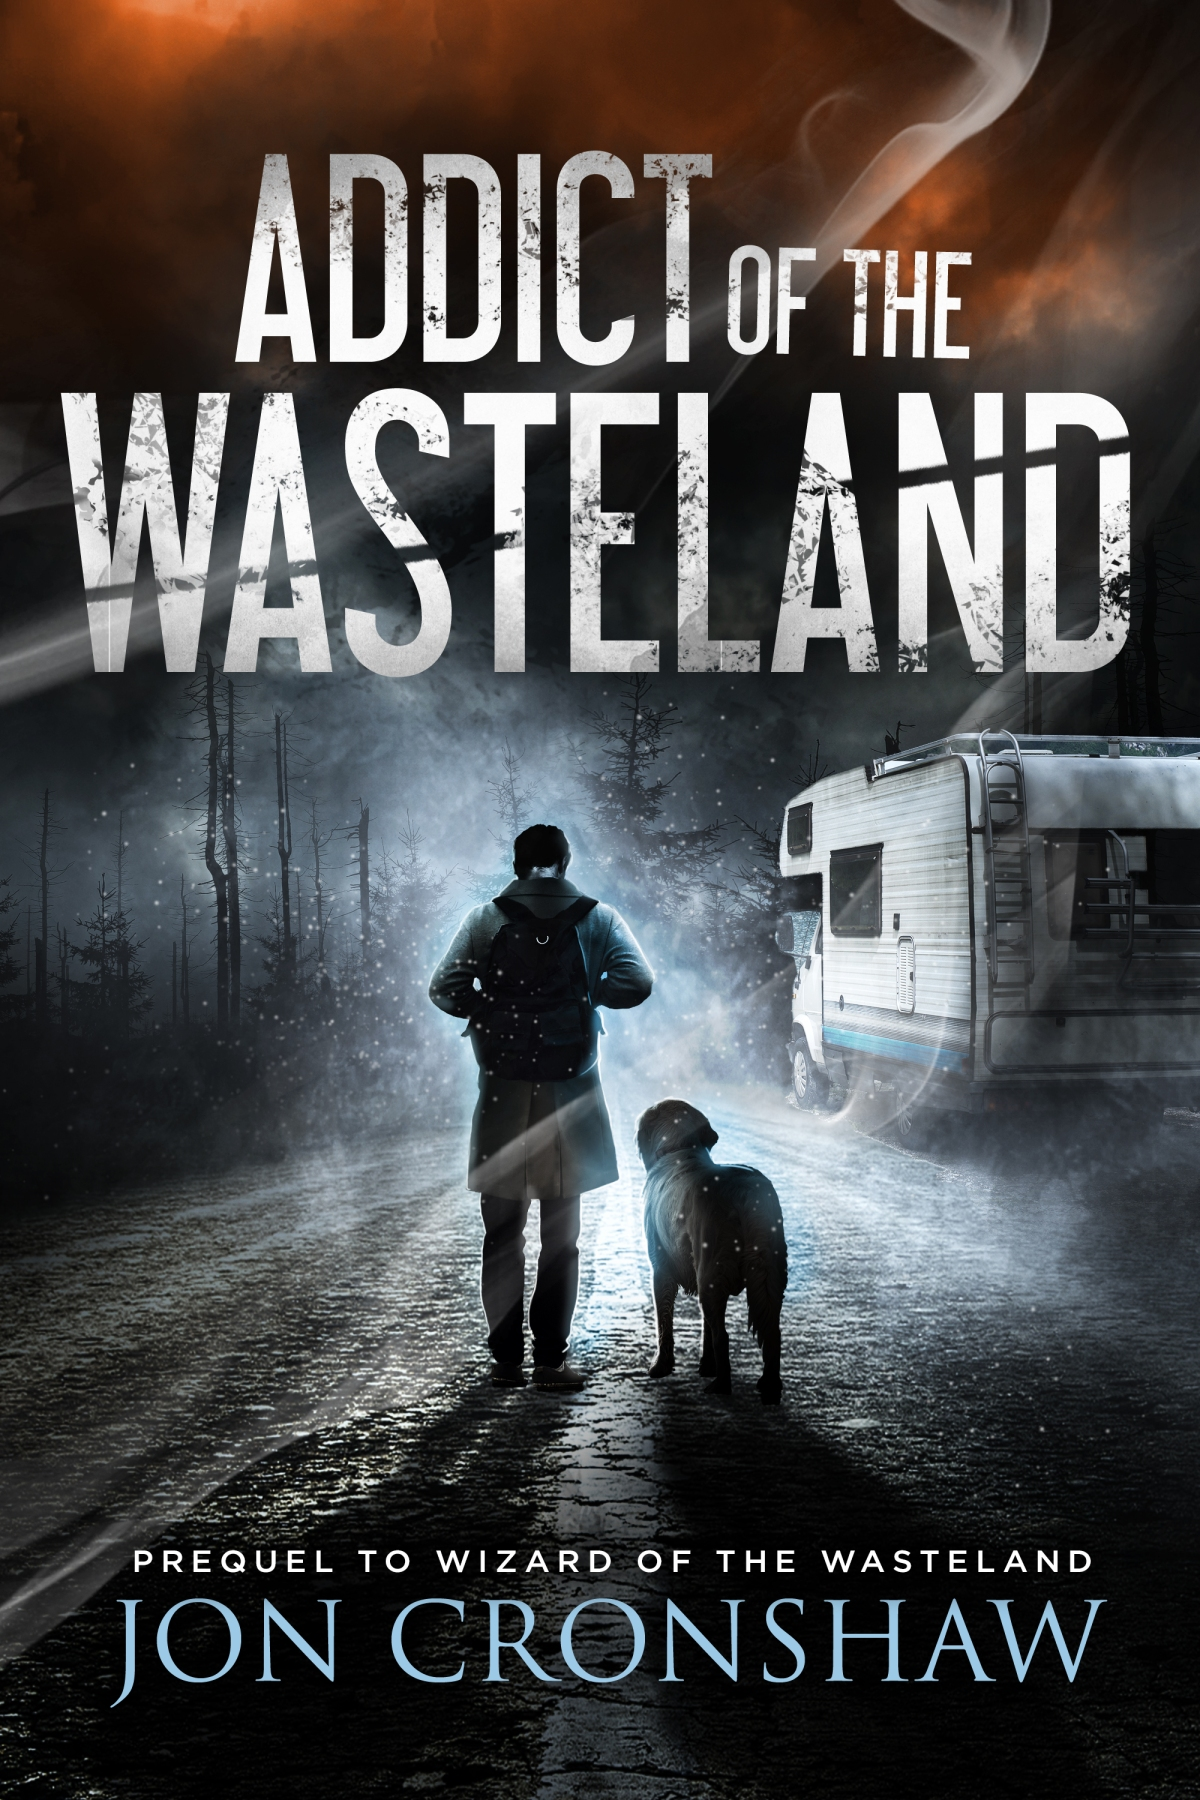 Announcing: Addict of the Wasteland